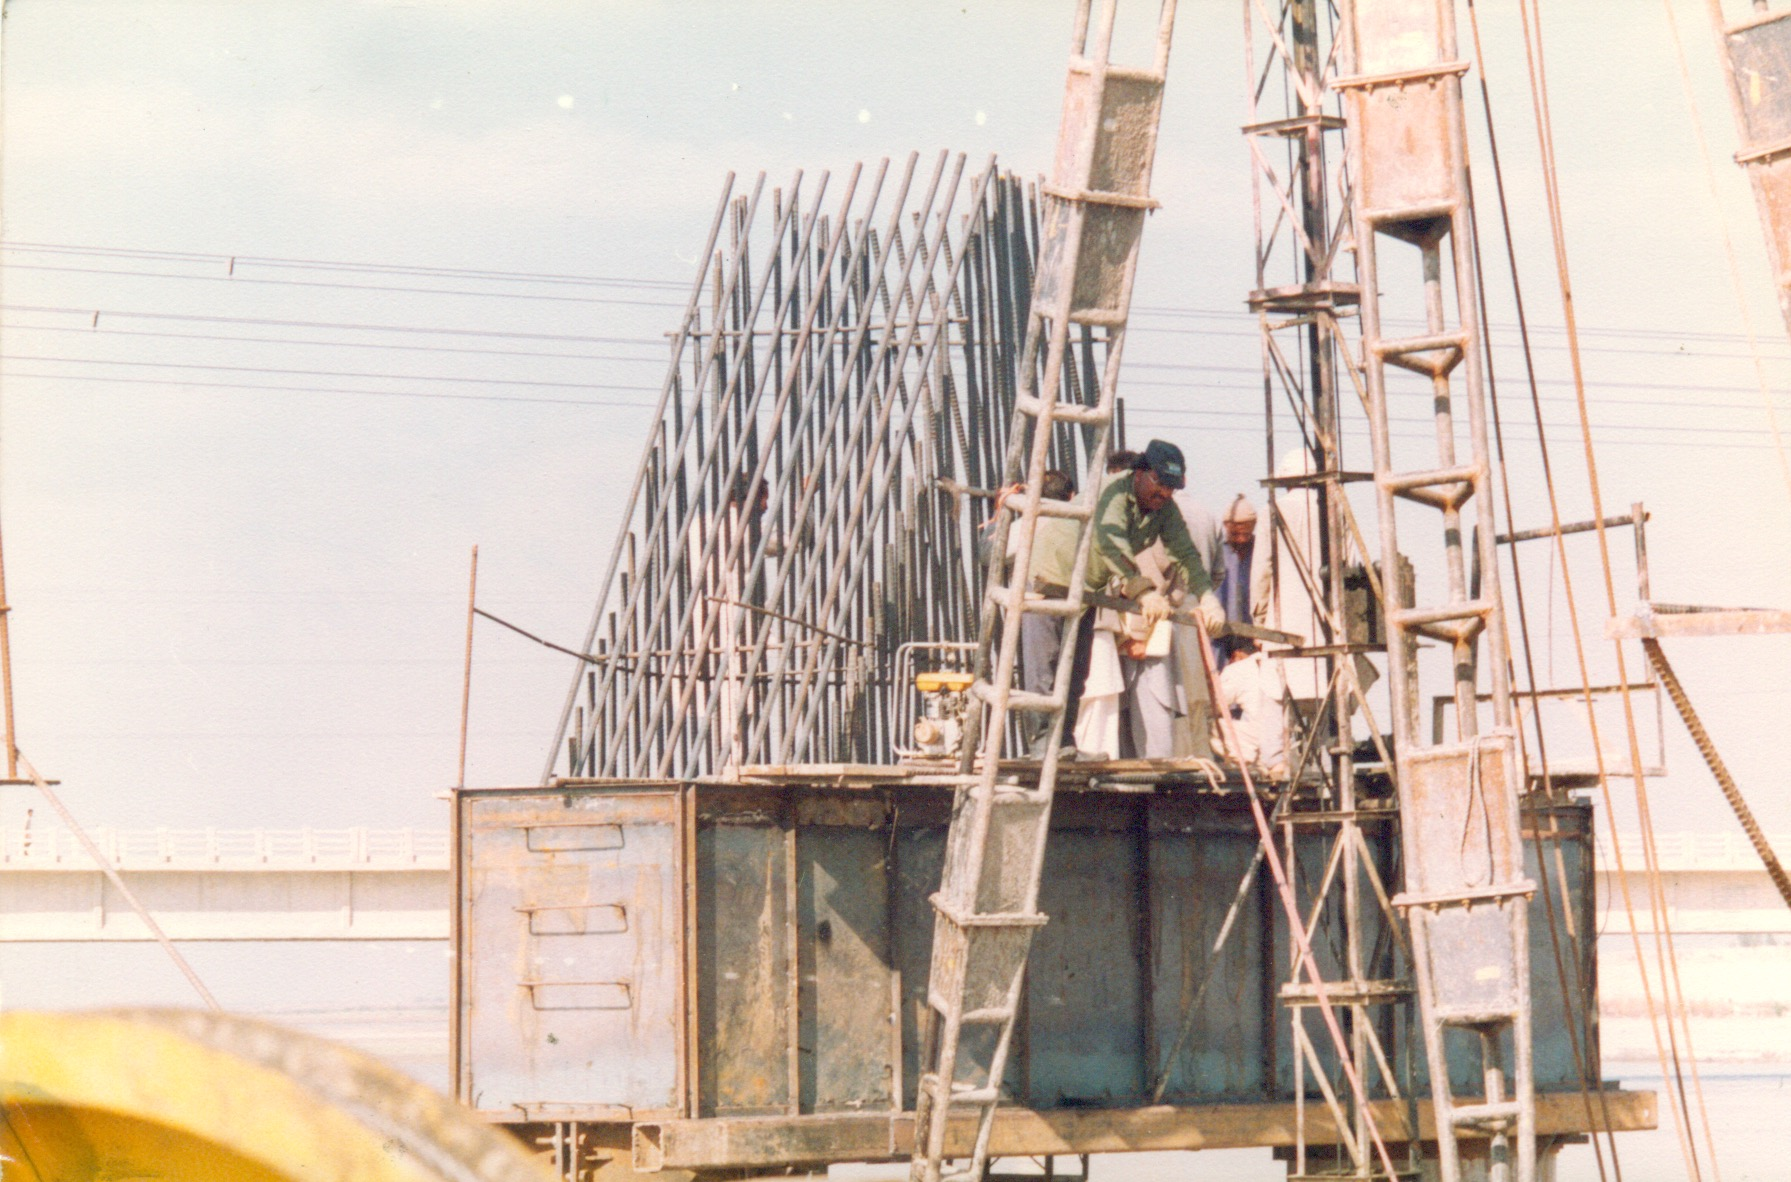 Construction of beams and caps for 500 KvA Transmission Line Tower in River Indus at Ghazi Ghat